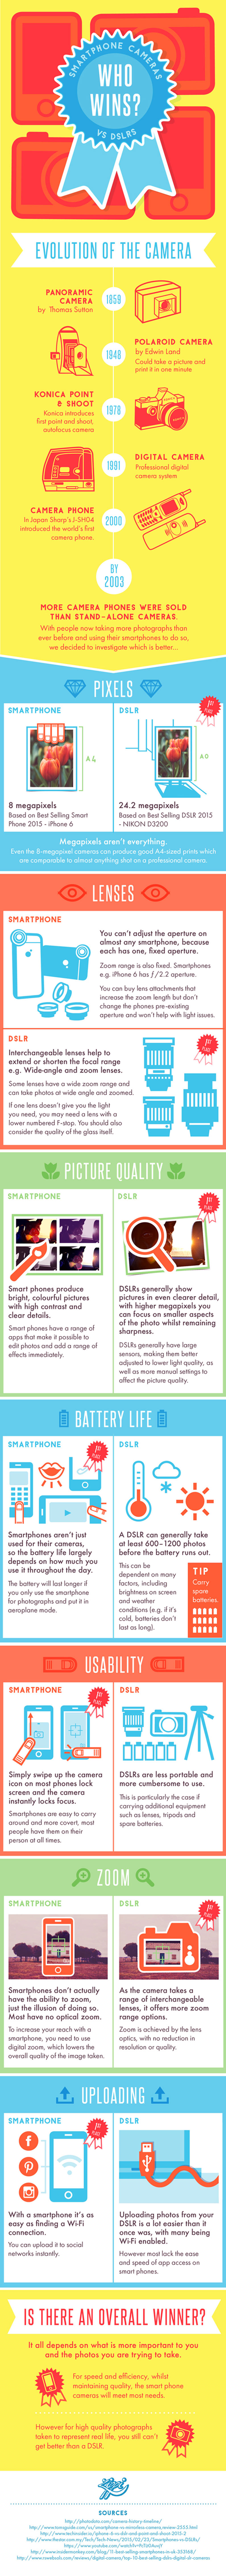 Who Wins Smartphone Cameras Vs DSLRs Infographic